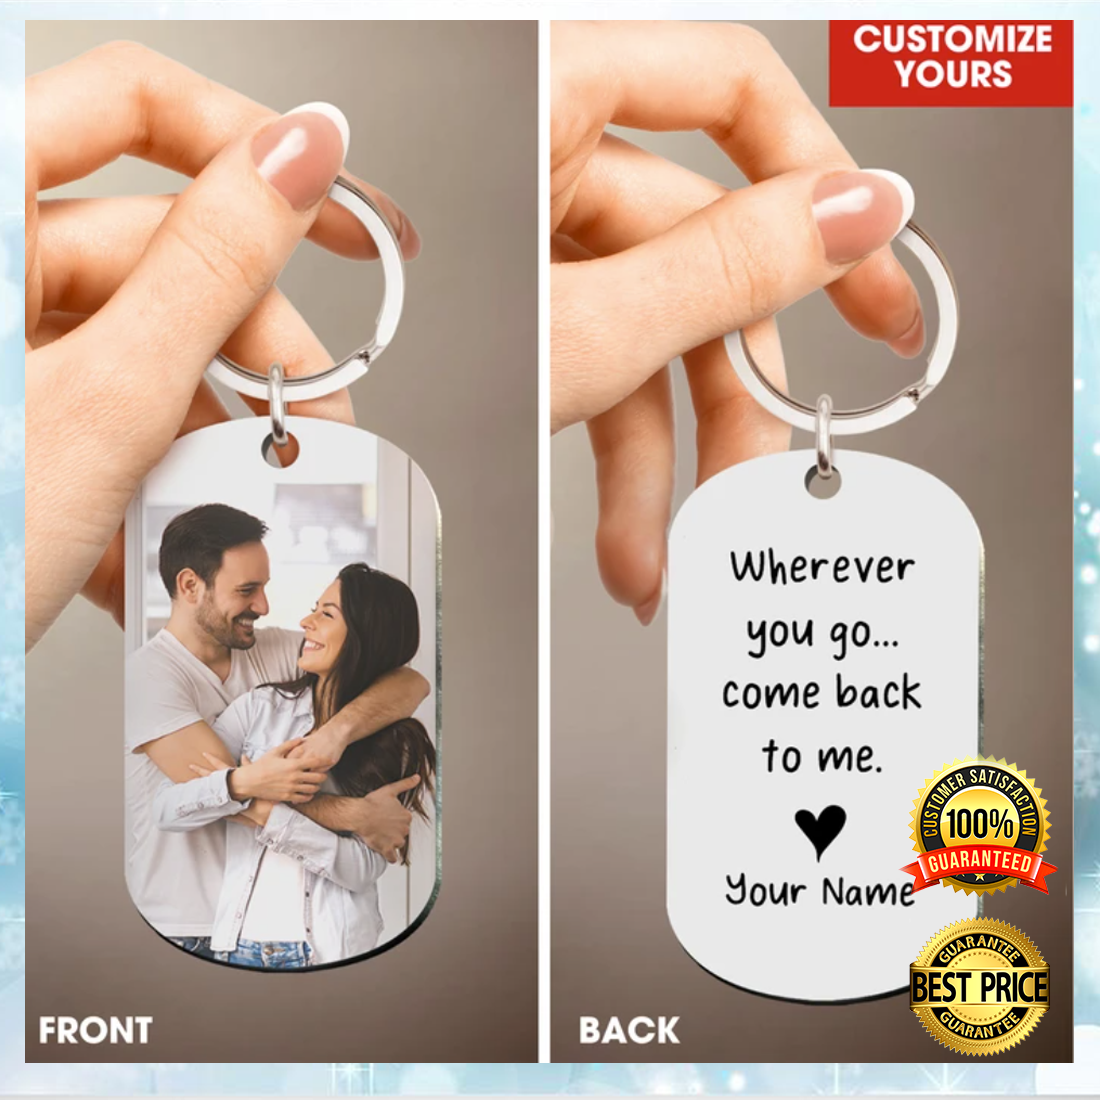 PERSONALIZED WHEREVER YOU GO COME BACK TO ME DOG TAG 6